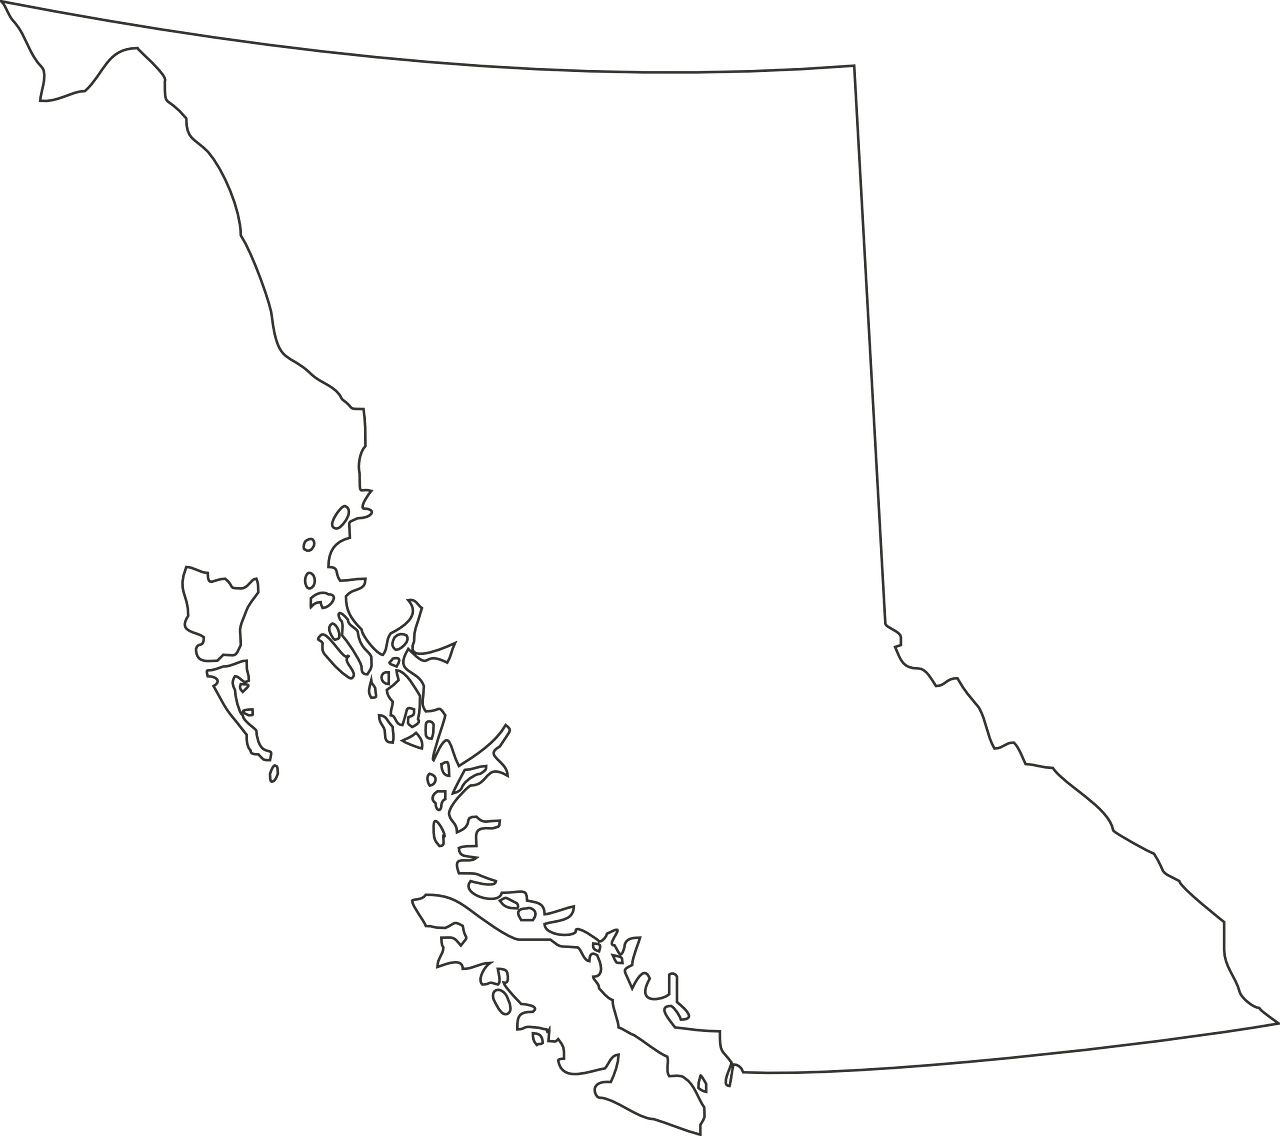 Outline of map of BC